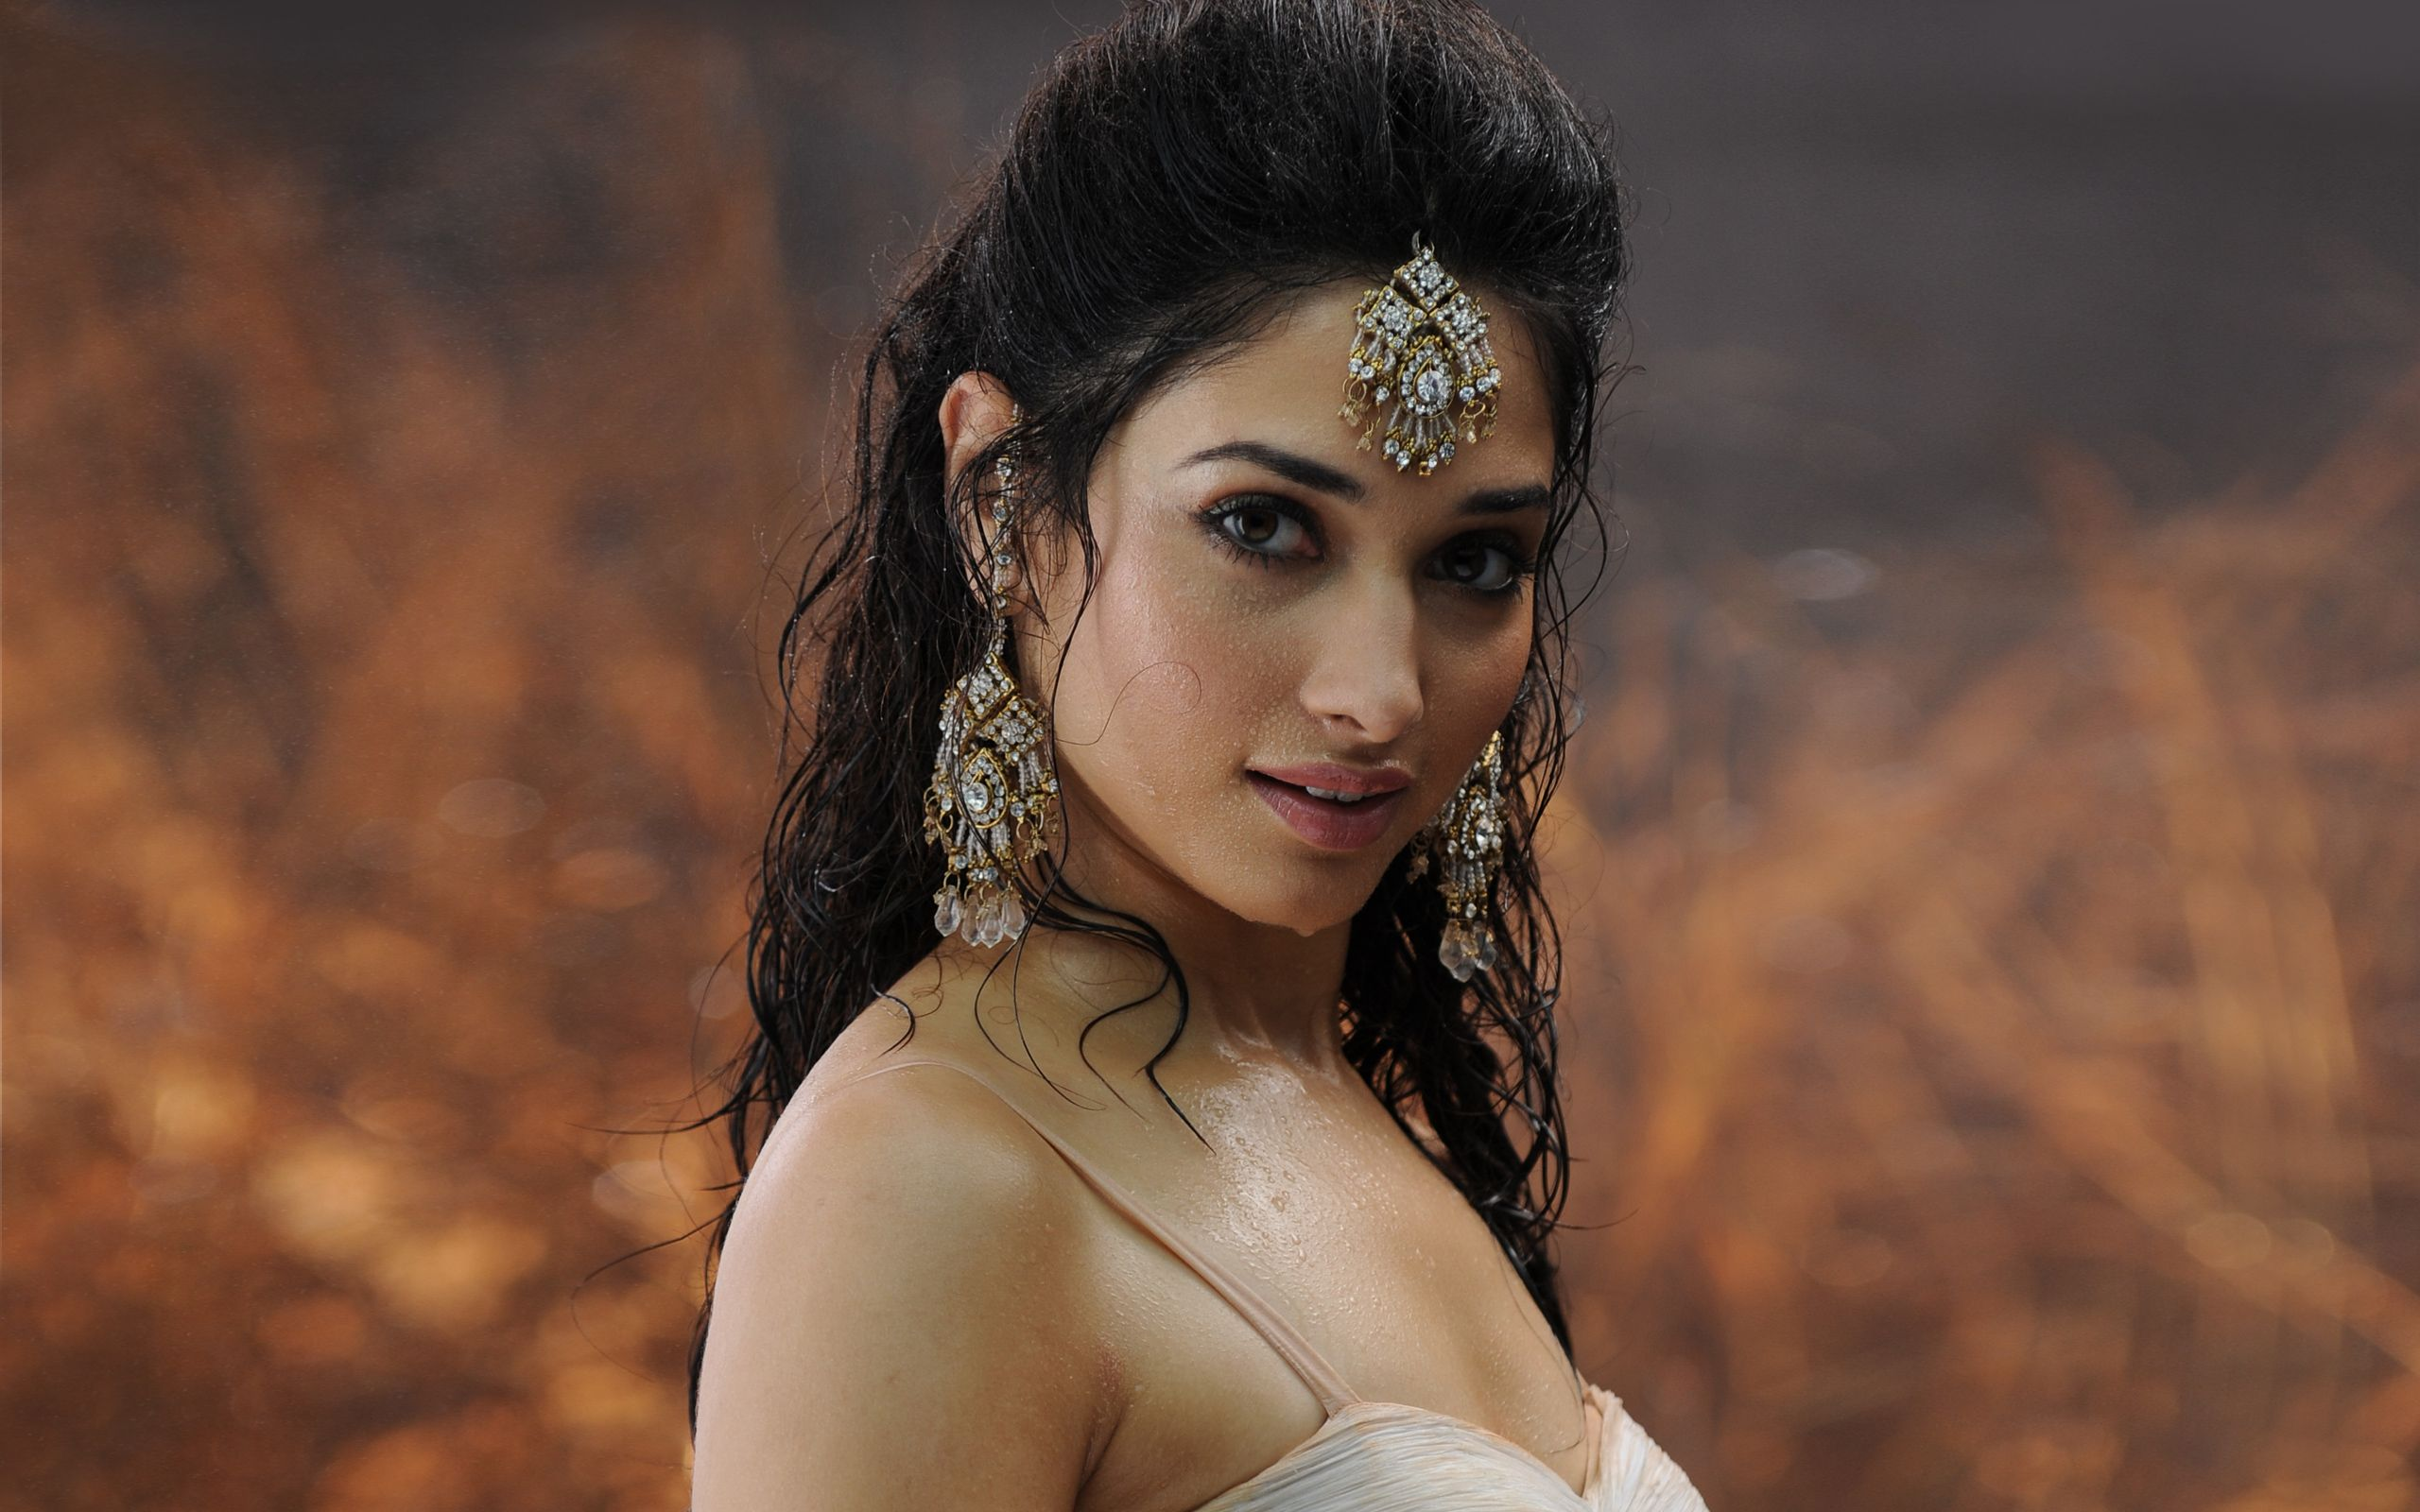 Tamanna Bhatia Hot wallpaper for download